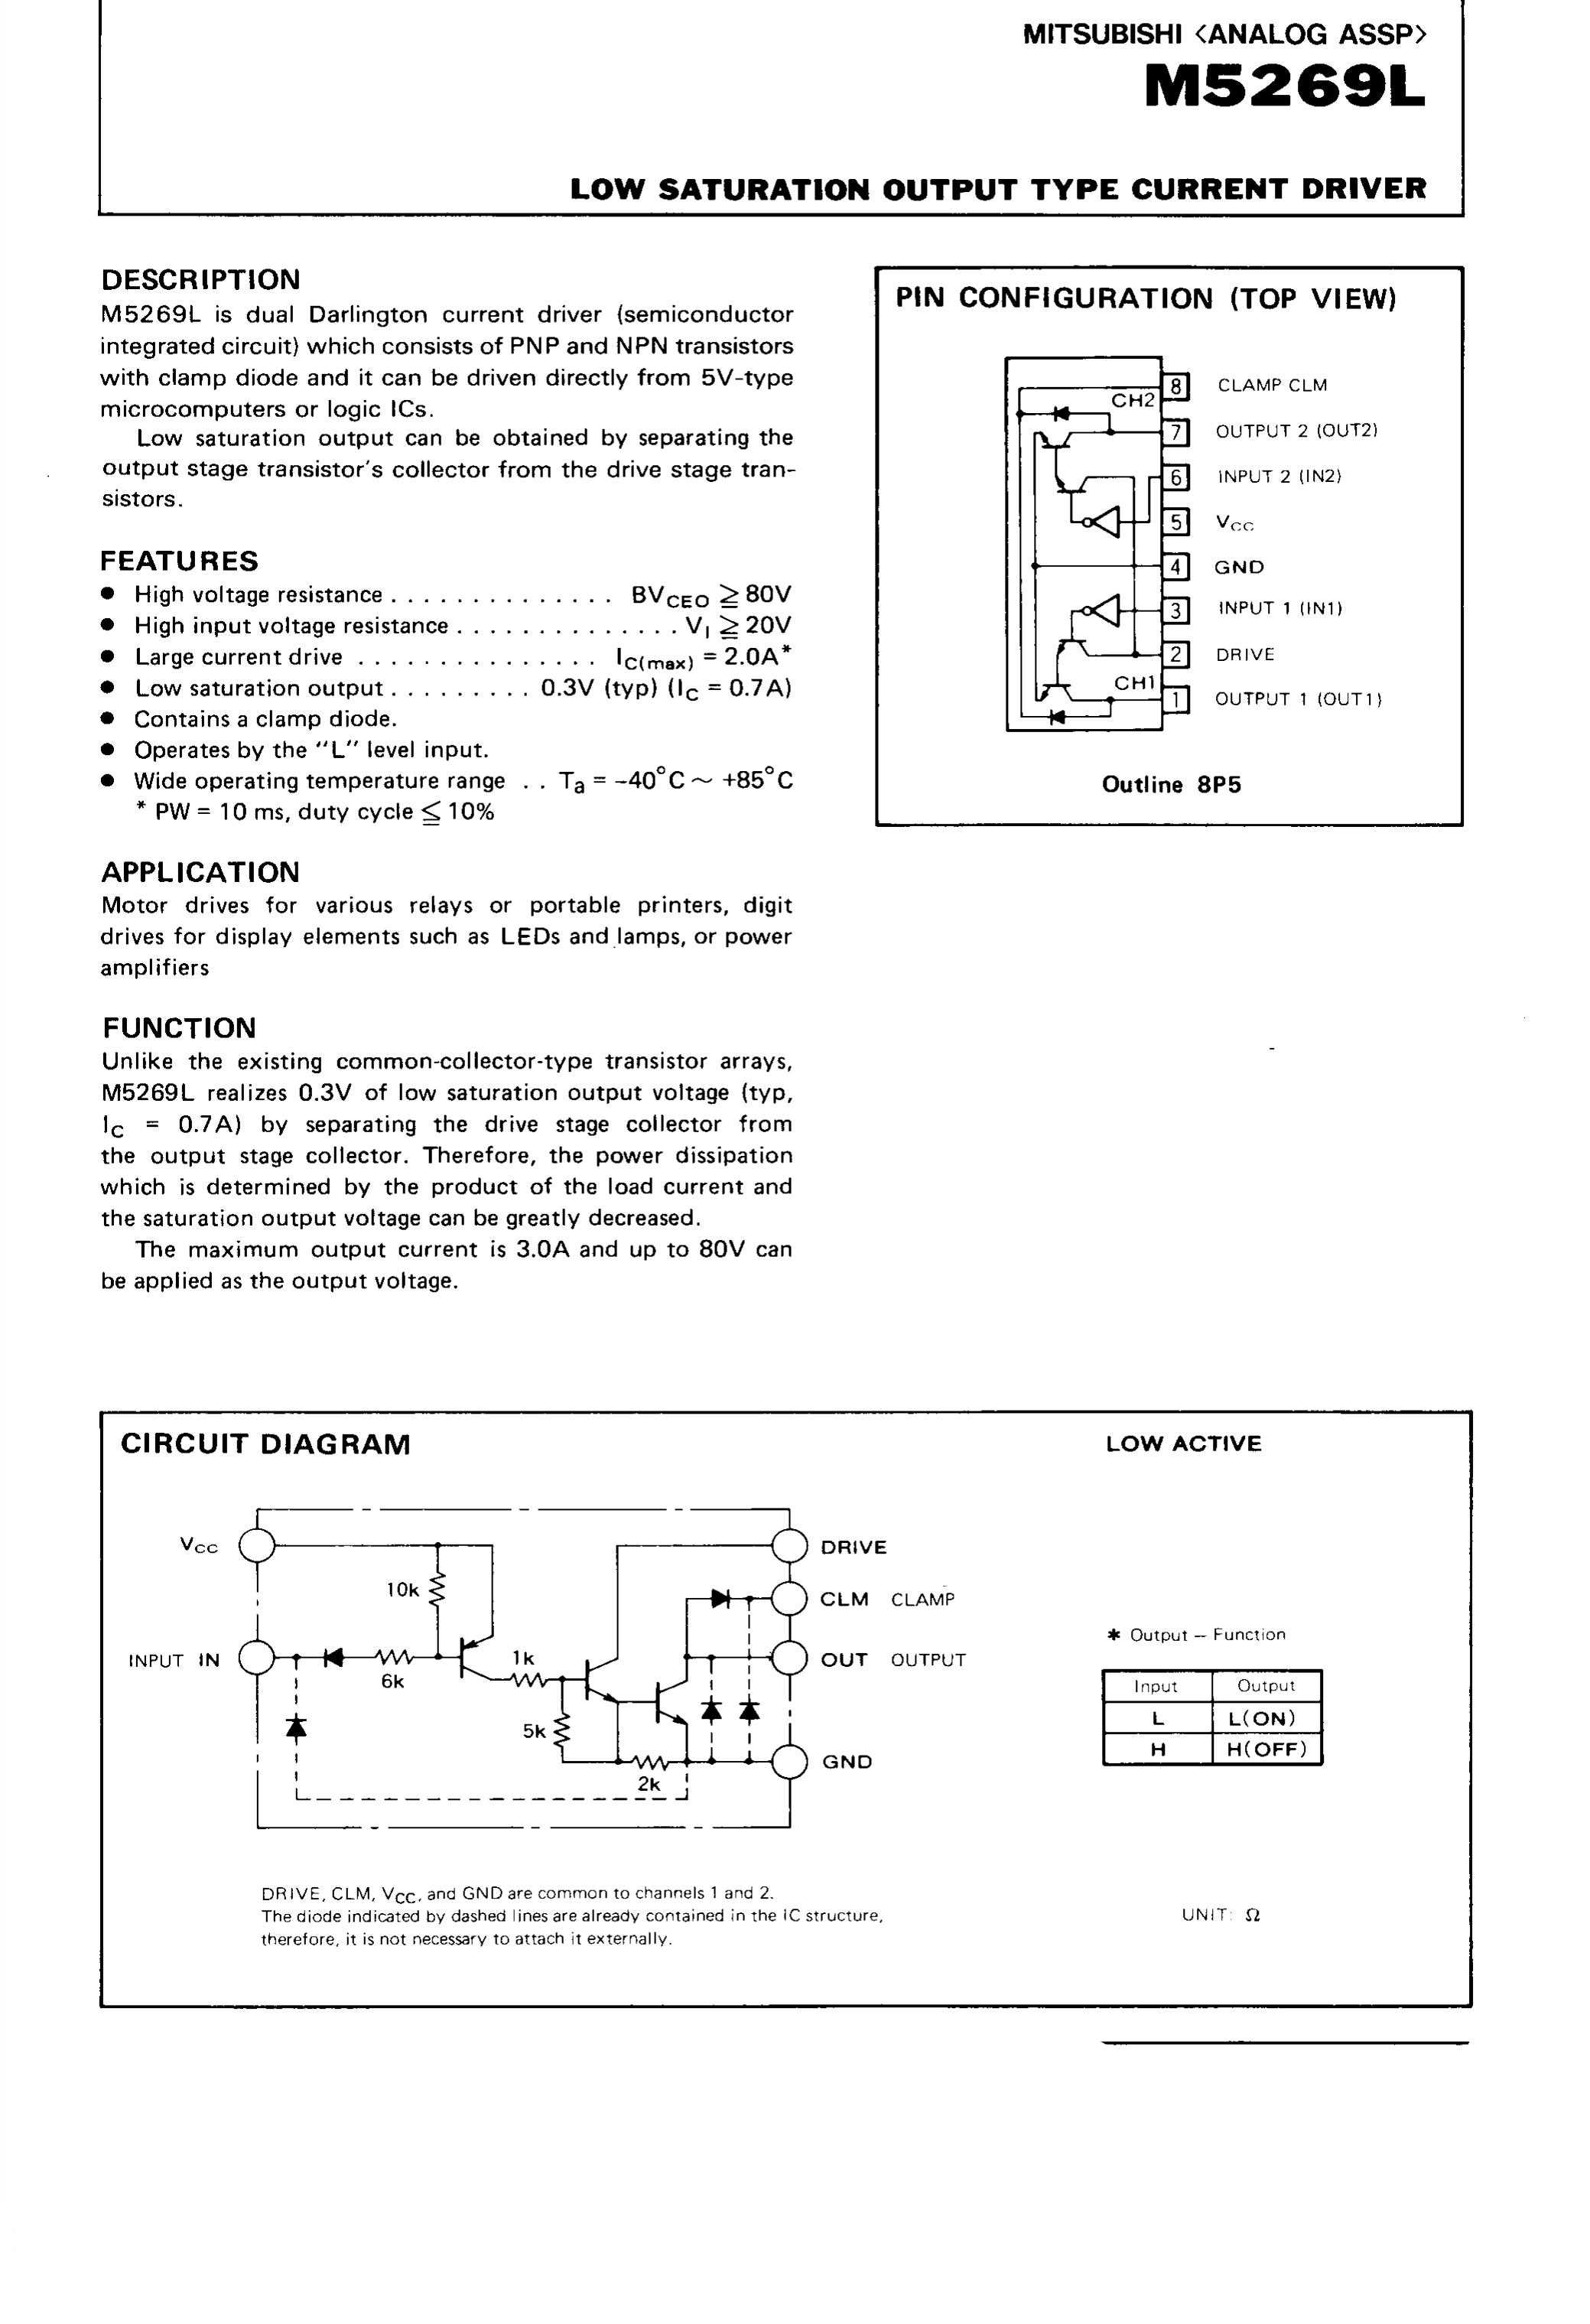 Default 4 Pin Relay With Diode All Parts Starting M For Mitsubishi Are Impossible To Find The Main Driver On A10 Is Connected D102 And